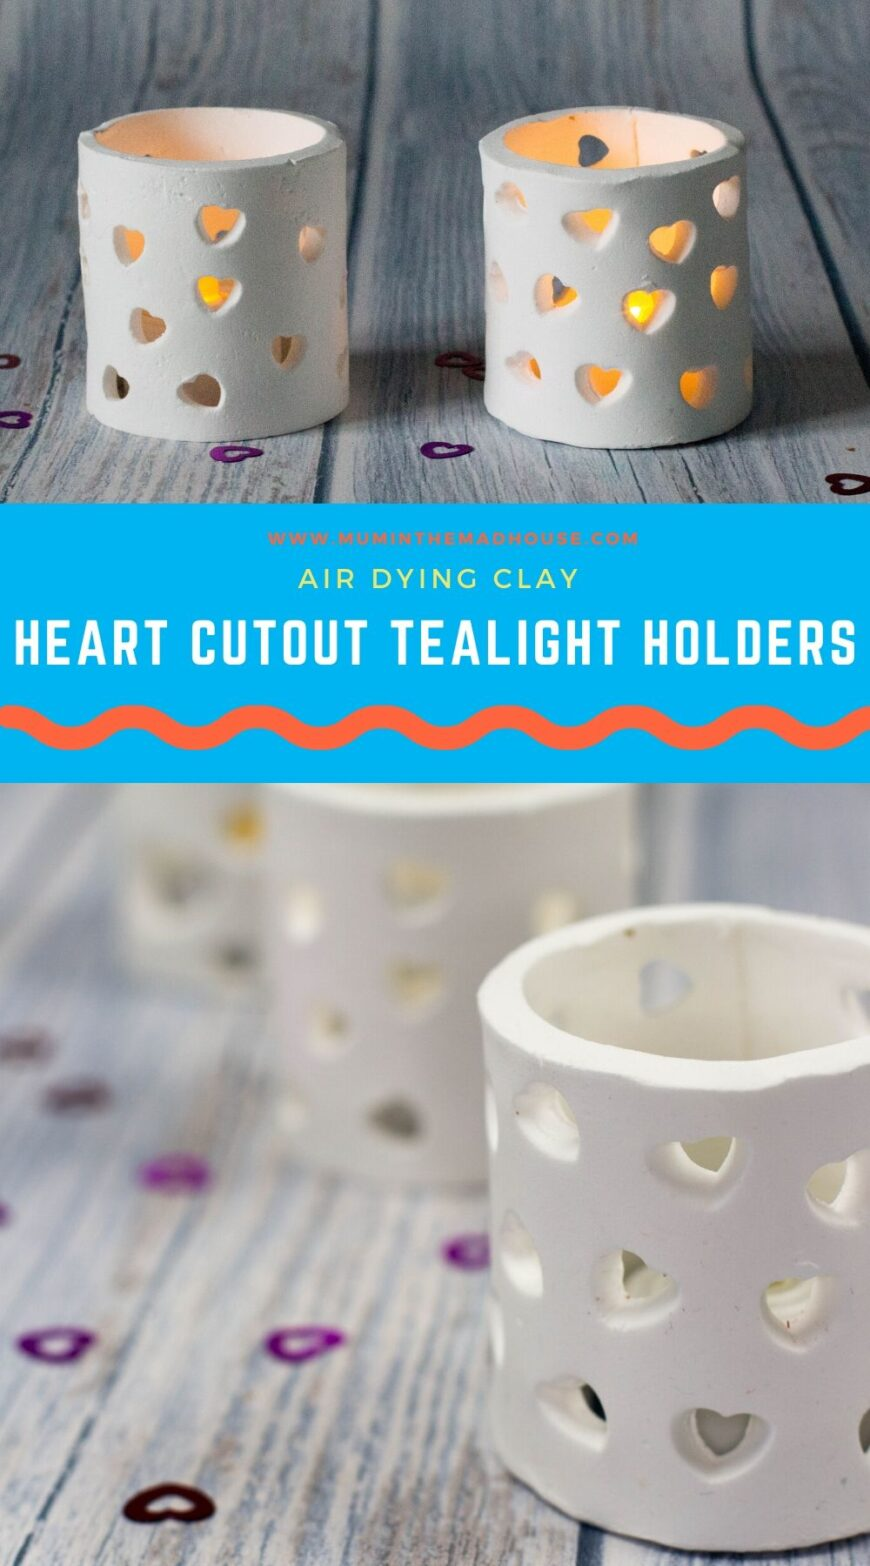 How to make clay tealight holders